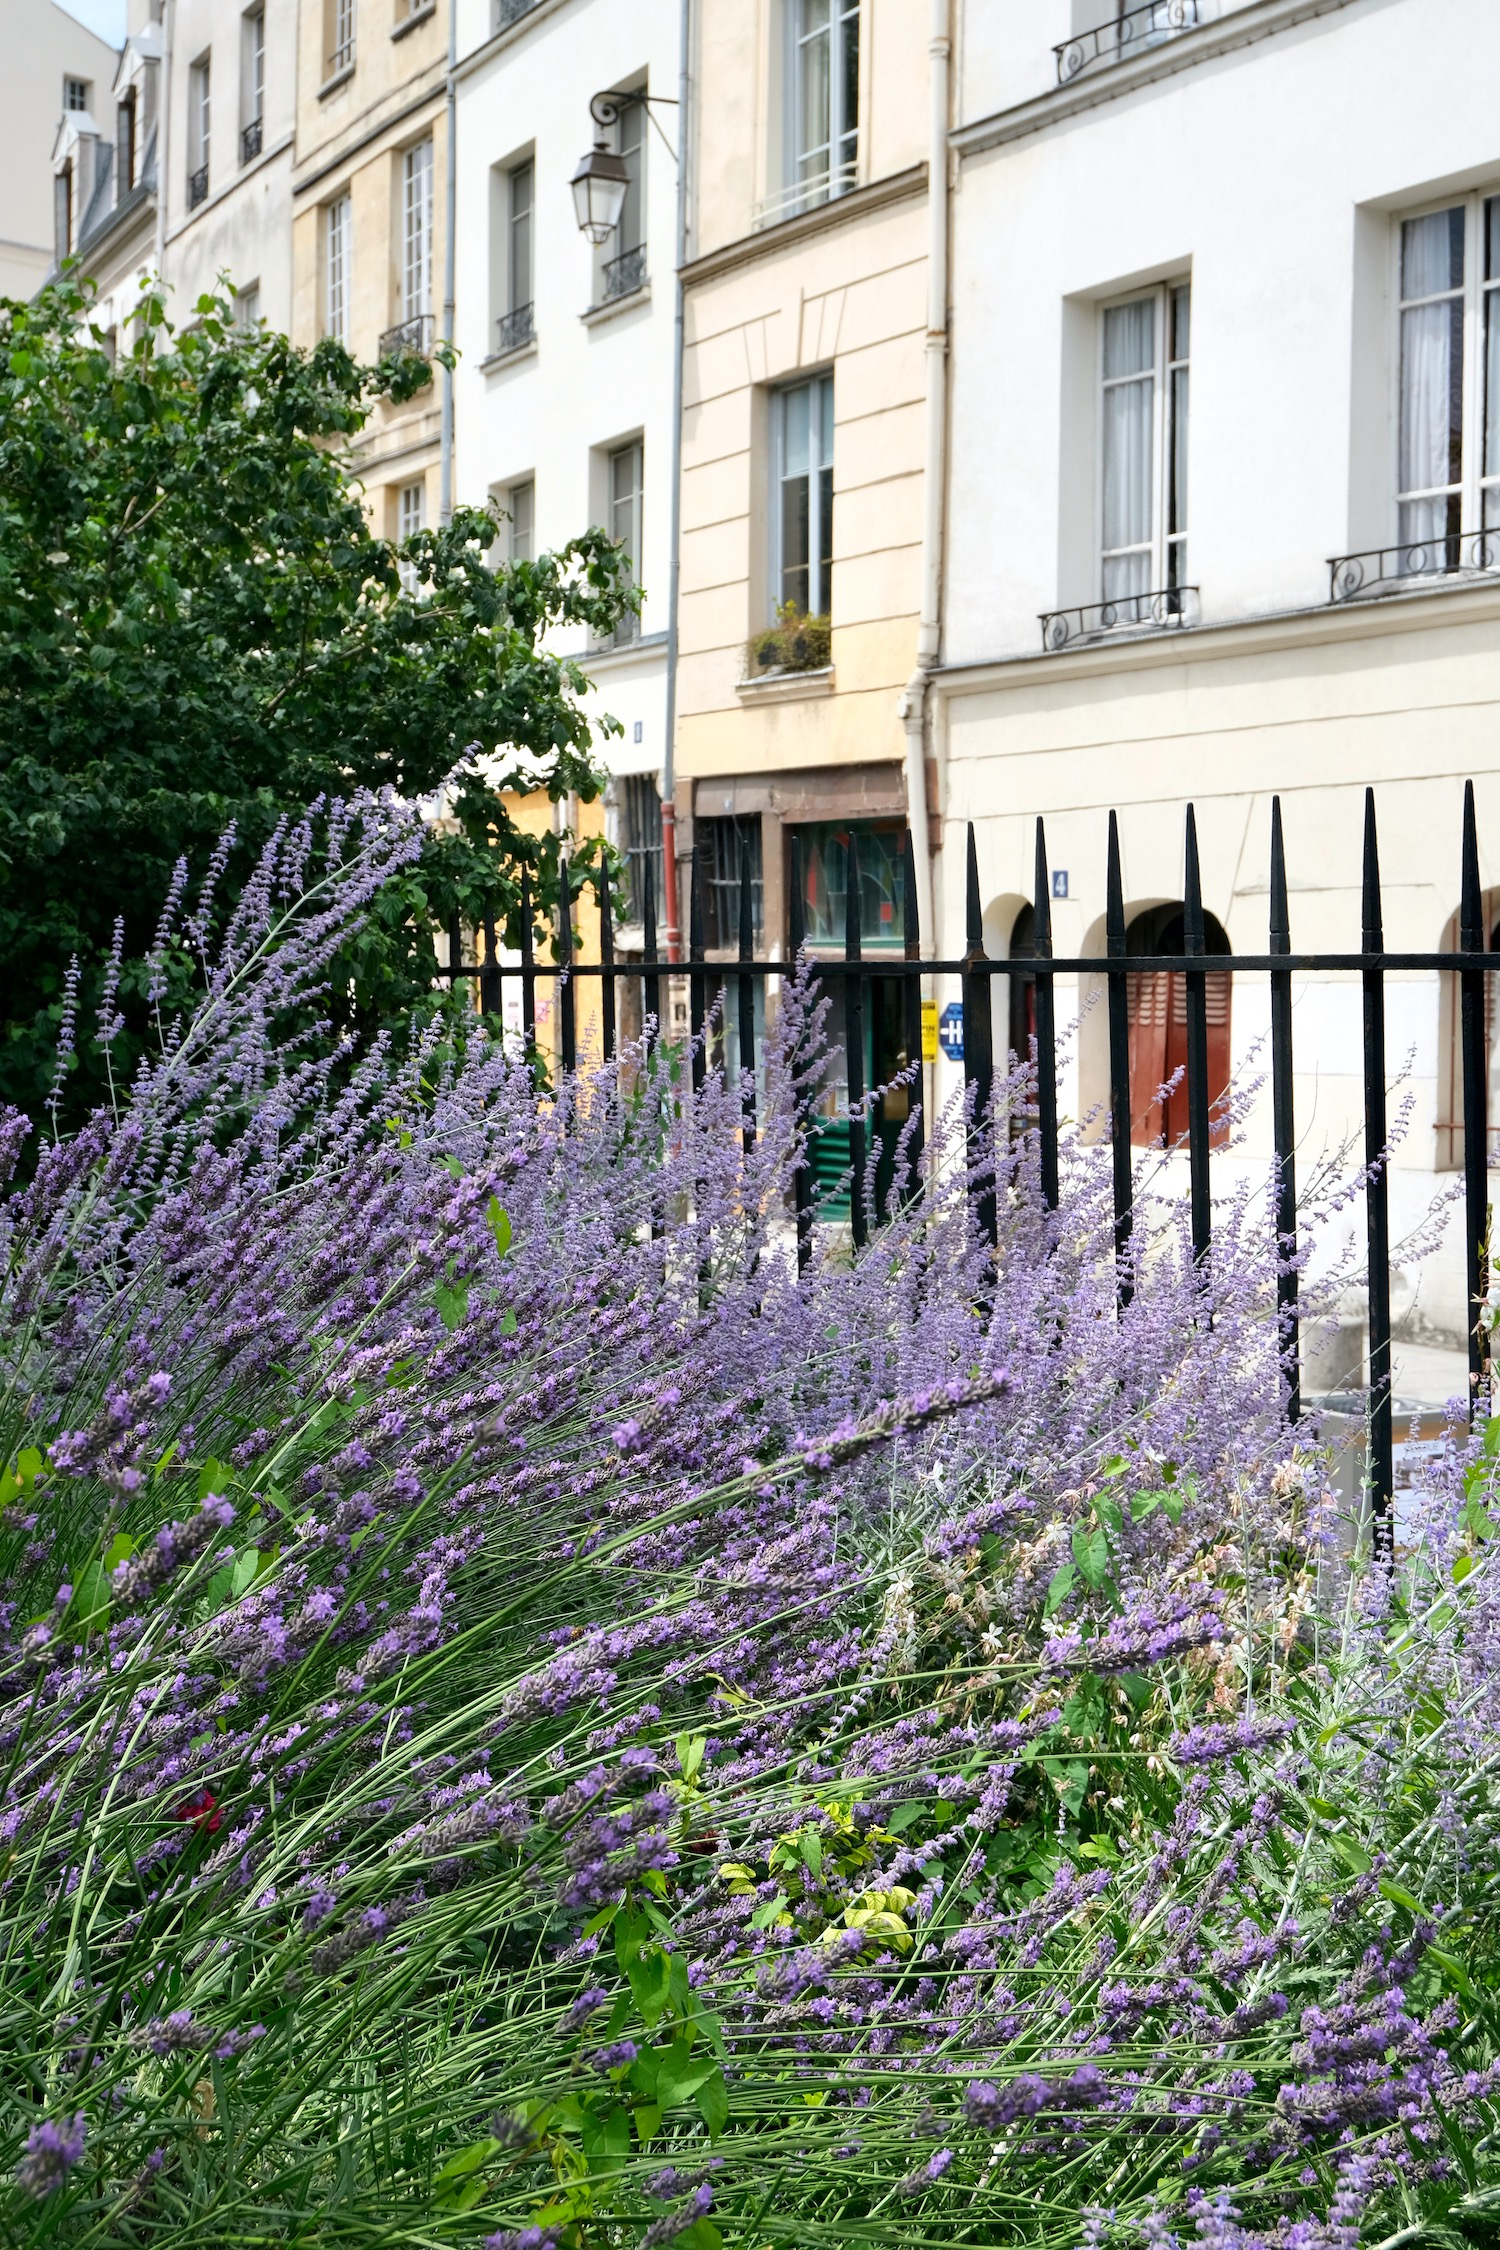 Provence in Paris: Where to See Lavender in Paris